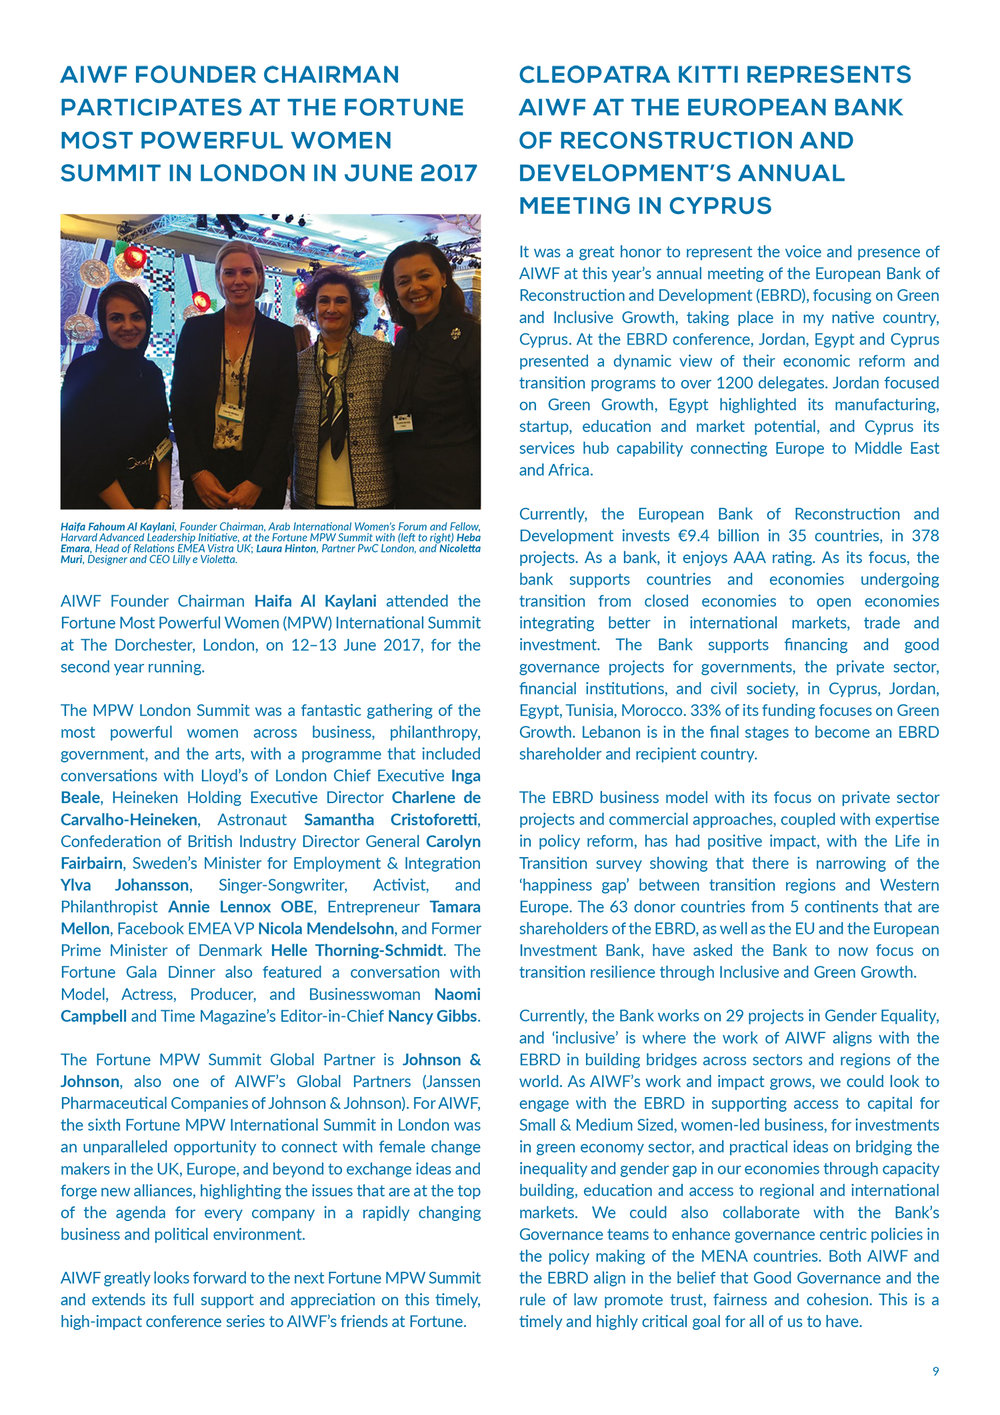 Cleopatra represents the Arab International Women's Forum (AIWF) at the European Bank of Reconstruction and Development's annual meeting in Cyrpus.  Download the full AIWF July 2017 newsletter  here .